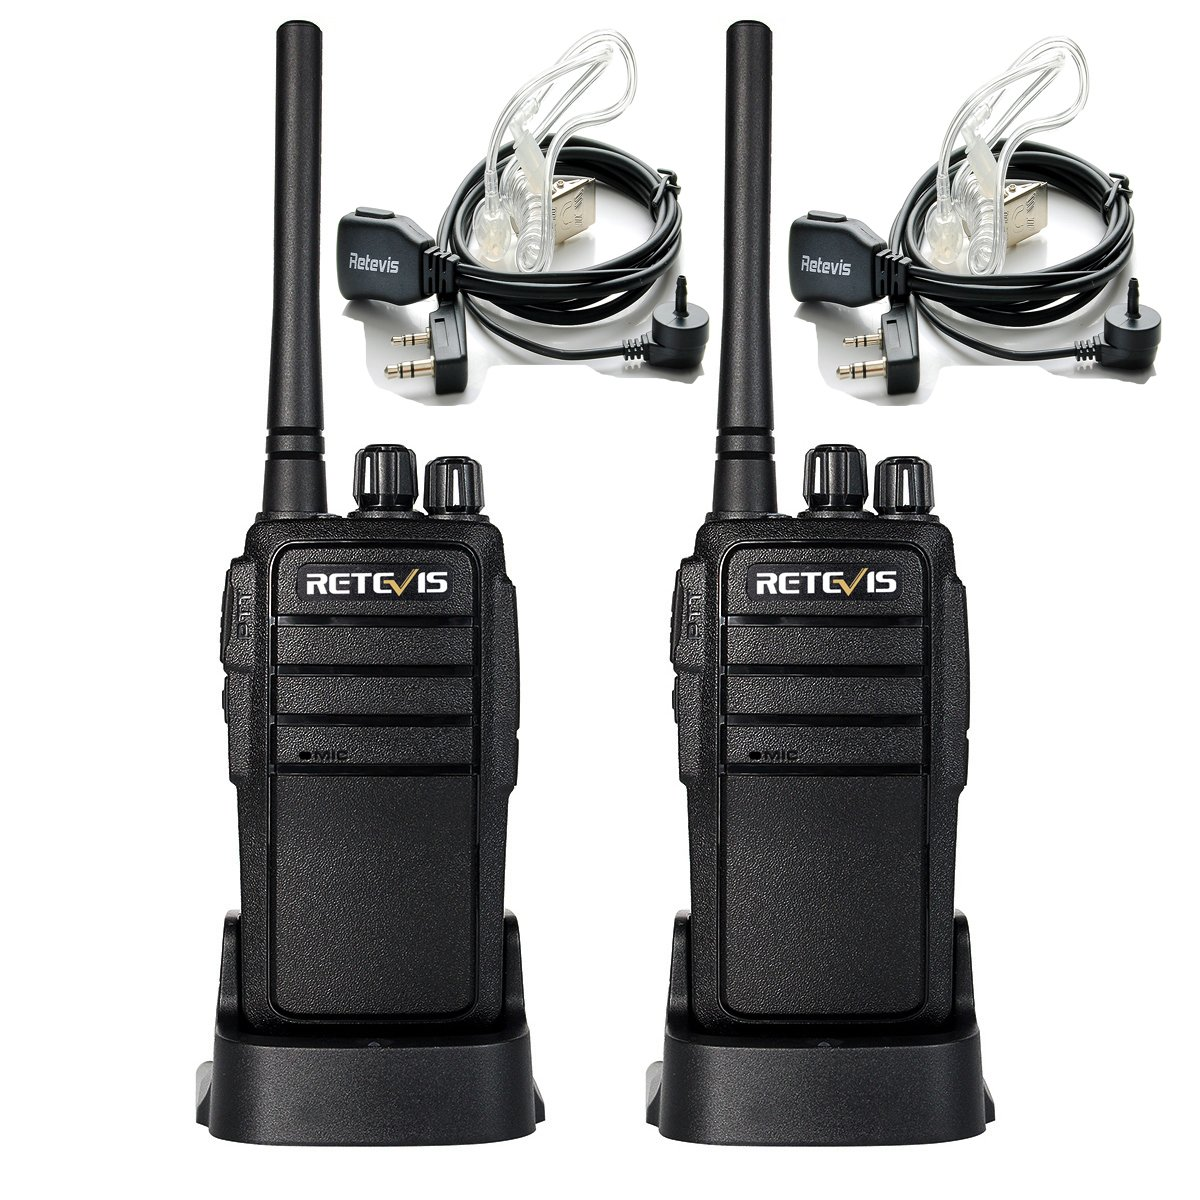 Retevis RT21 Two Way Radio UHF 16 CH 2 Way Radio VOX Scrambler Walkie Talkies Rechargeable(1 Pair) with Covert Air Acoustic Earpiece(2 Pack)